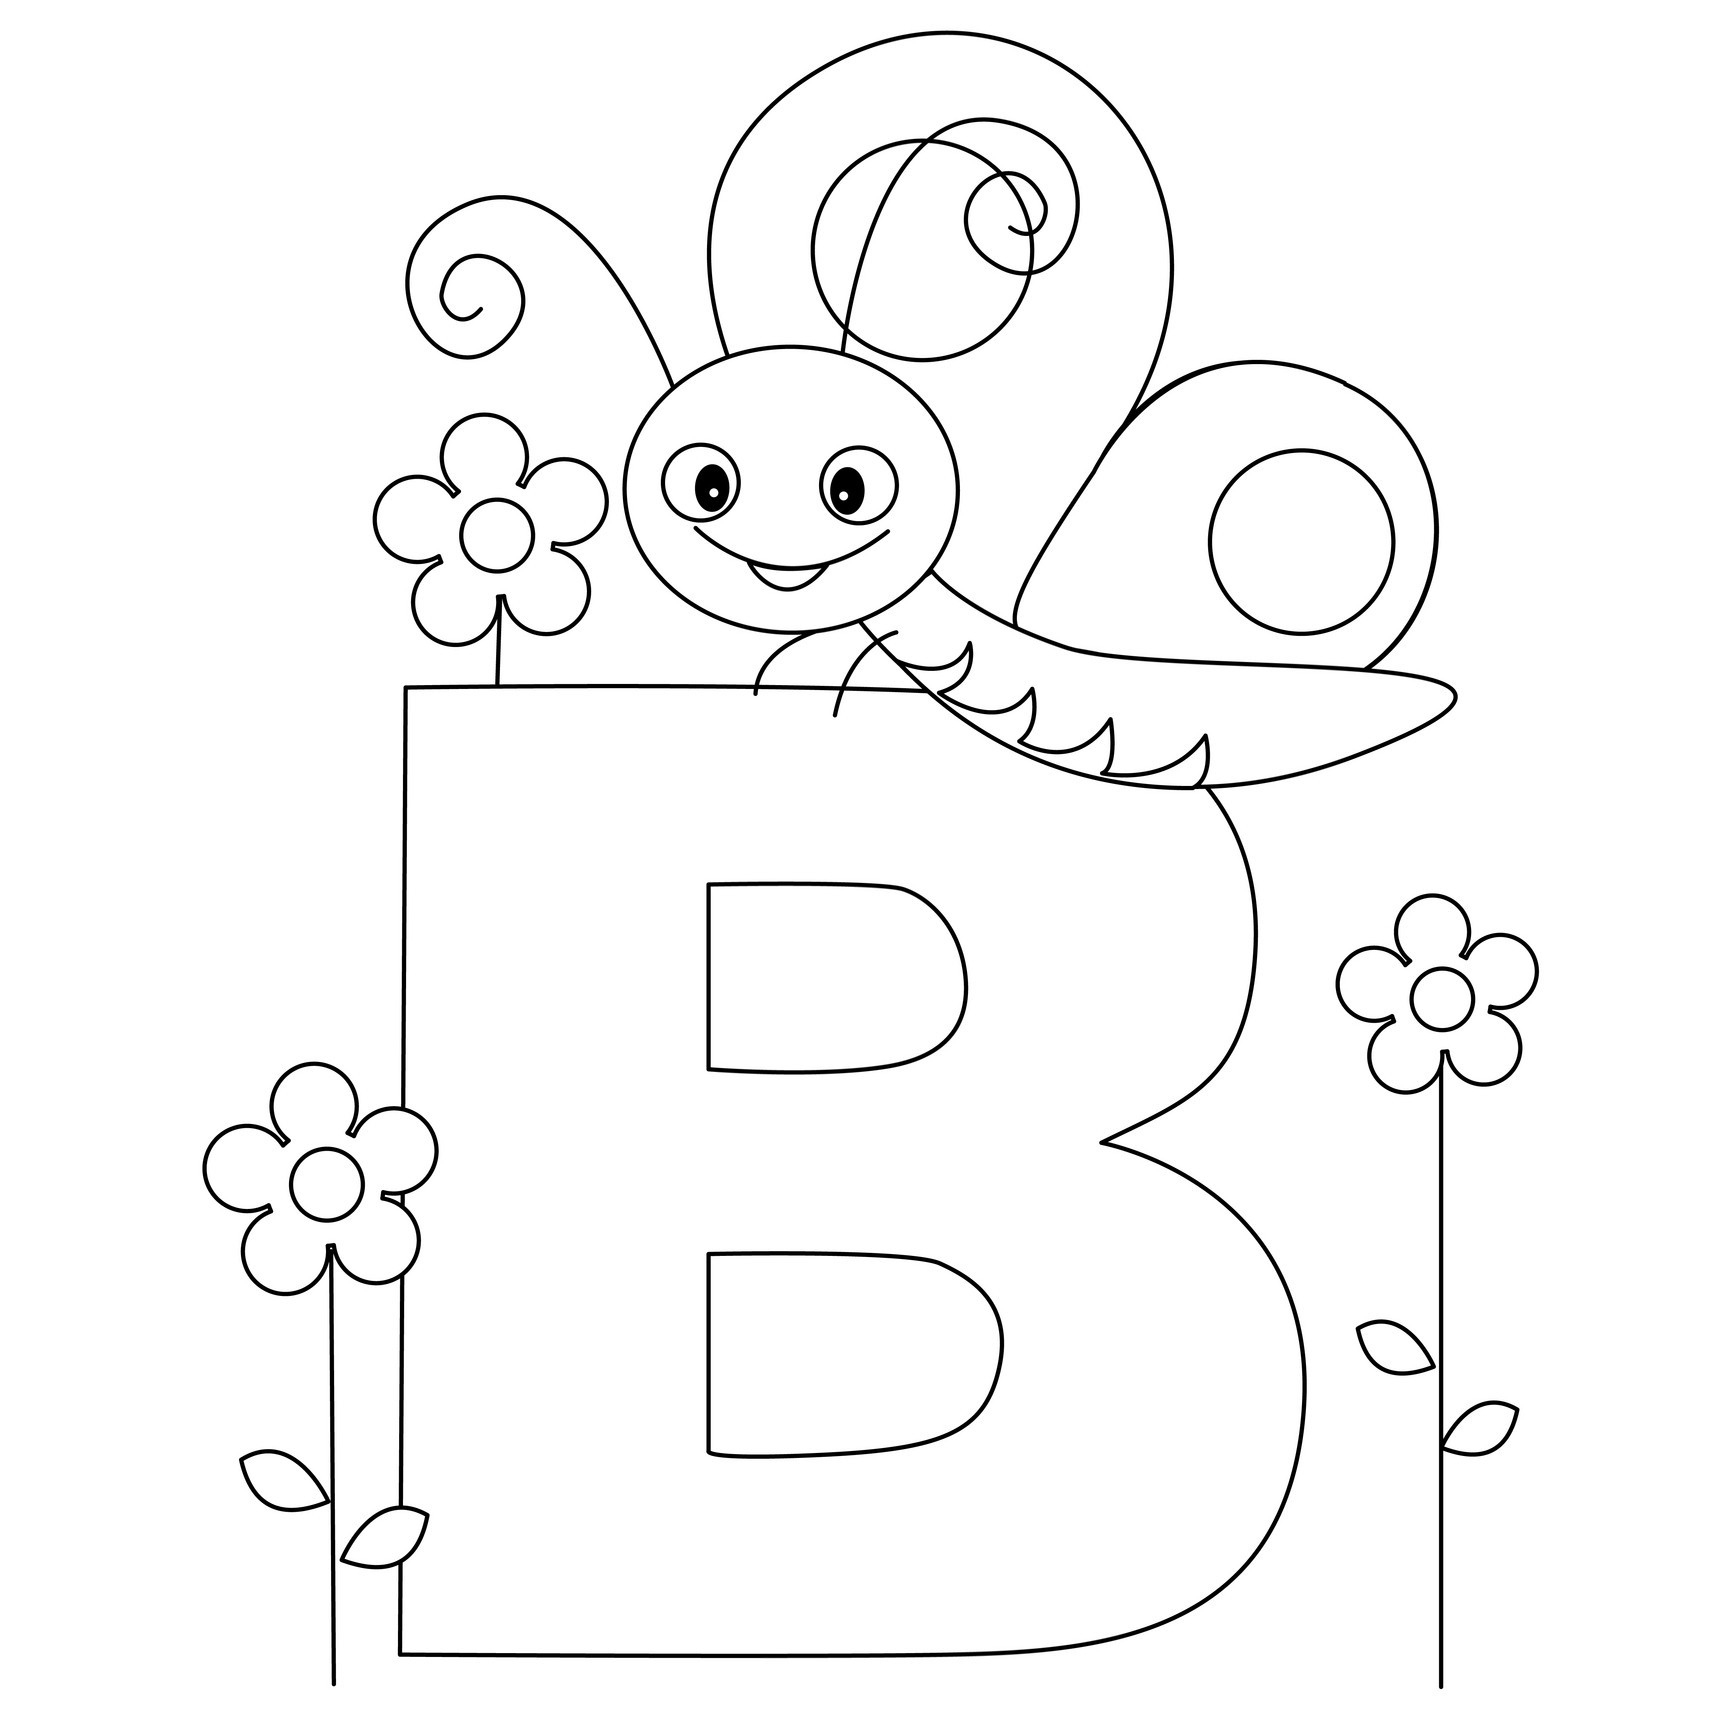 Free Printable Alphabet Coloring Pages For Kids - Best Coloring | Free Printable Color By Letter Worksheets